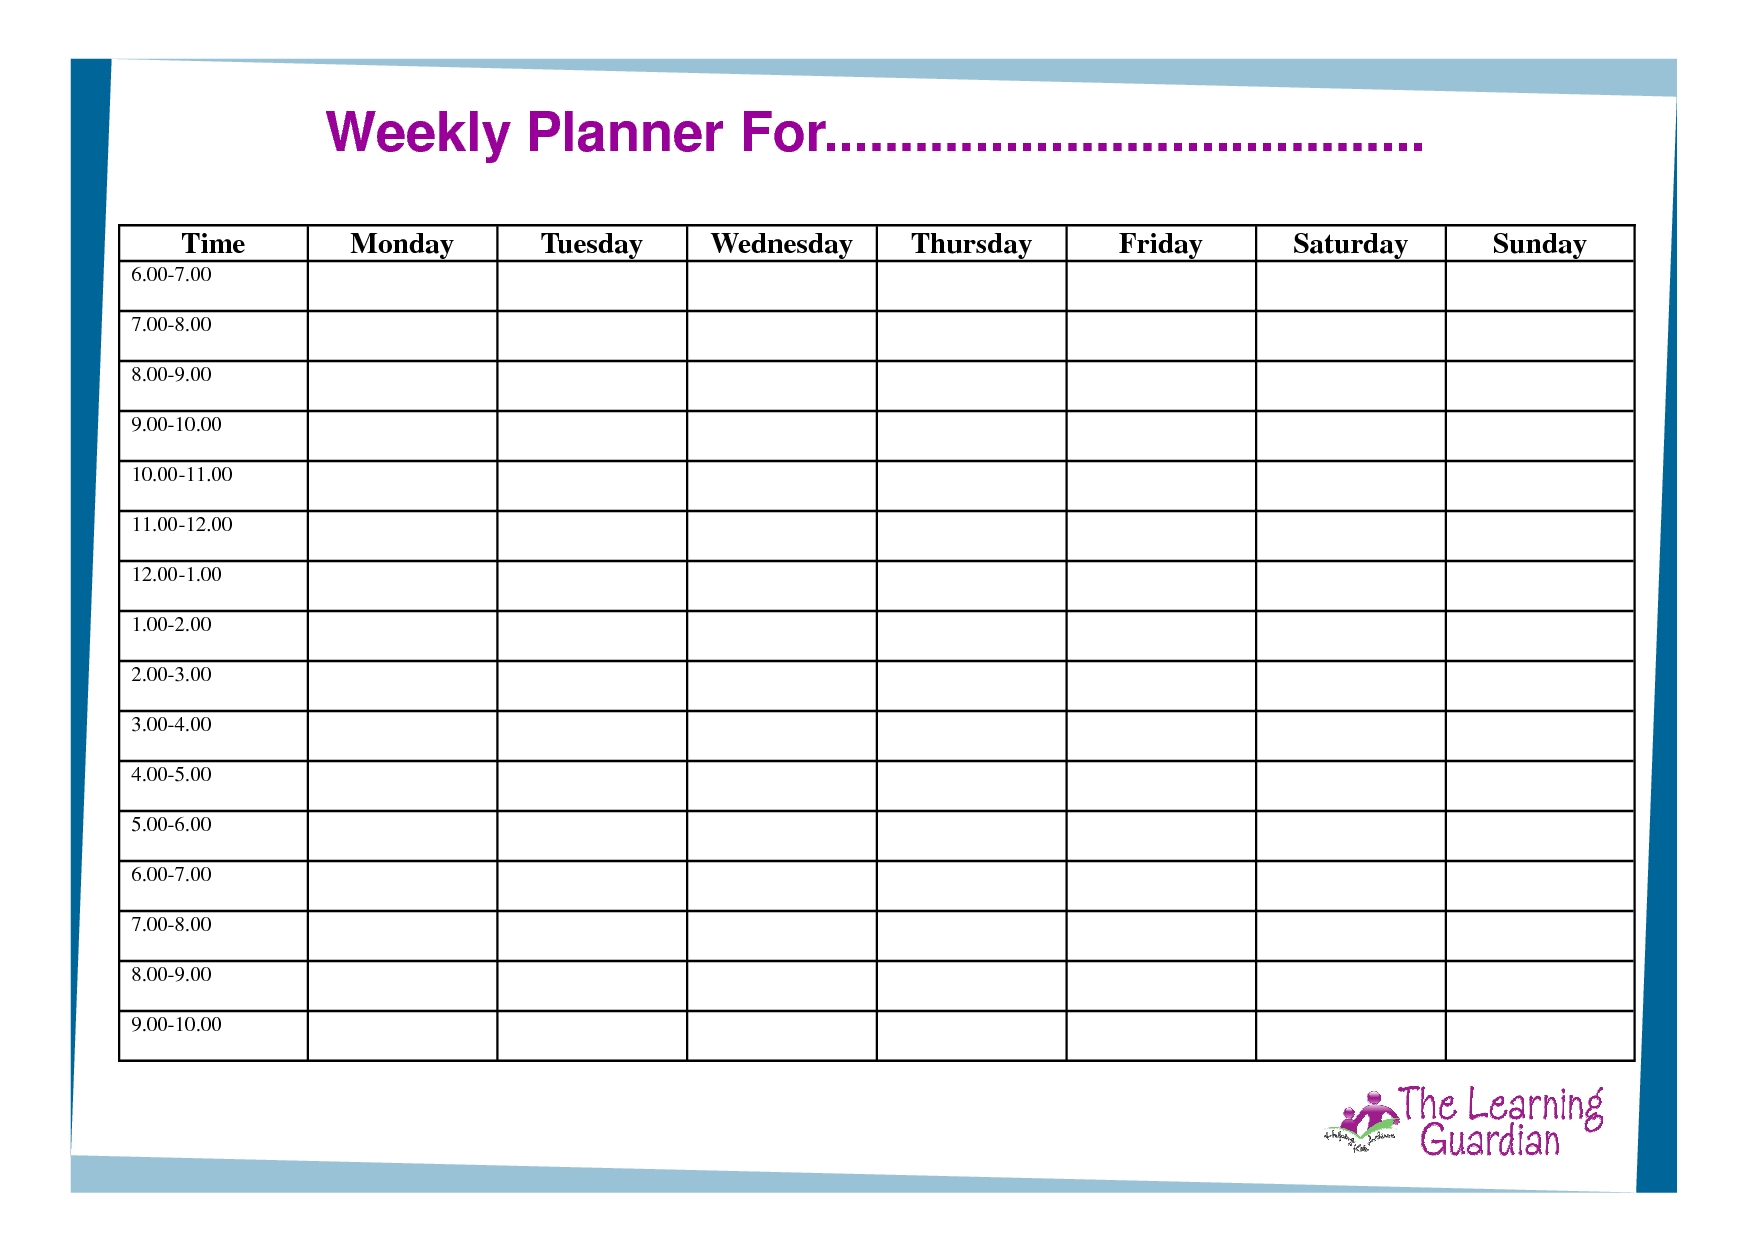 Free Printable Weekly Calendar Templates | Weekly Planner For Time with regard to Blank Weekly Monday Through Friday Calendar Template